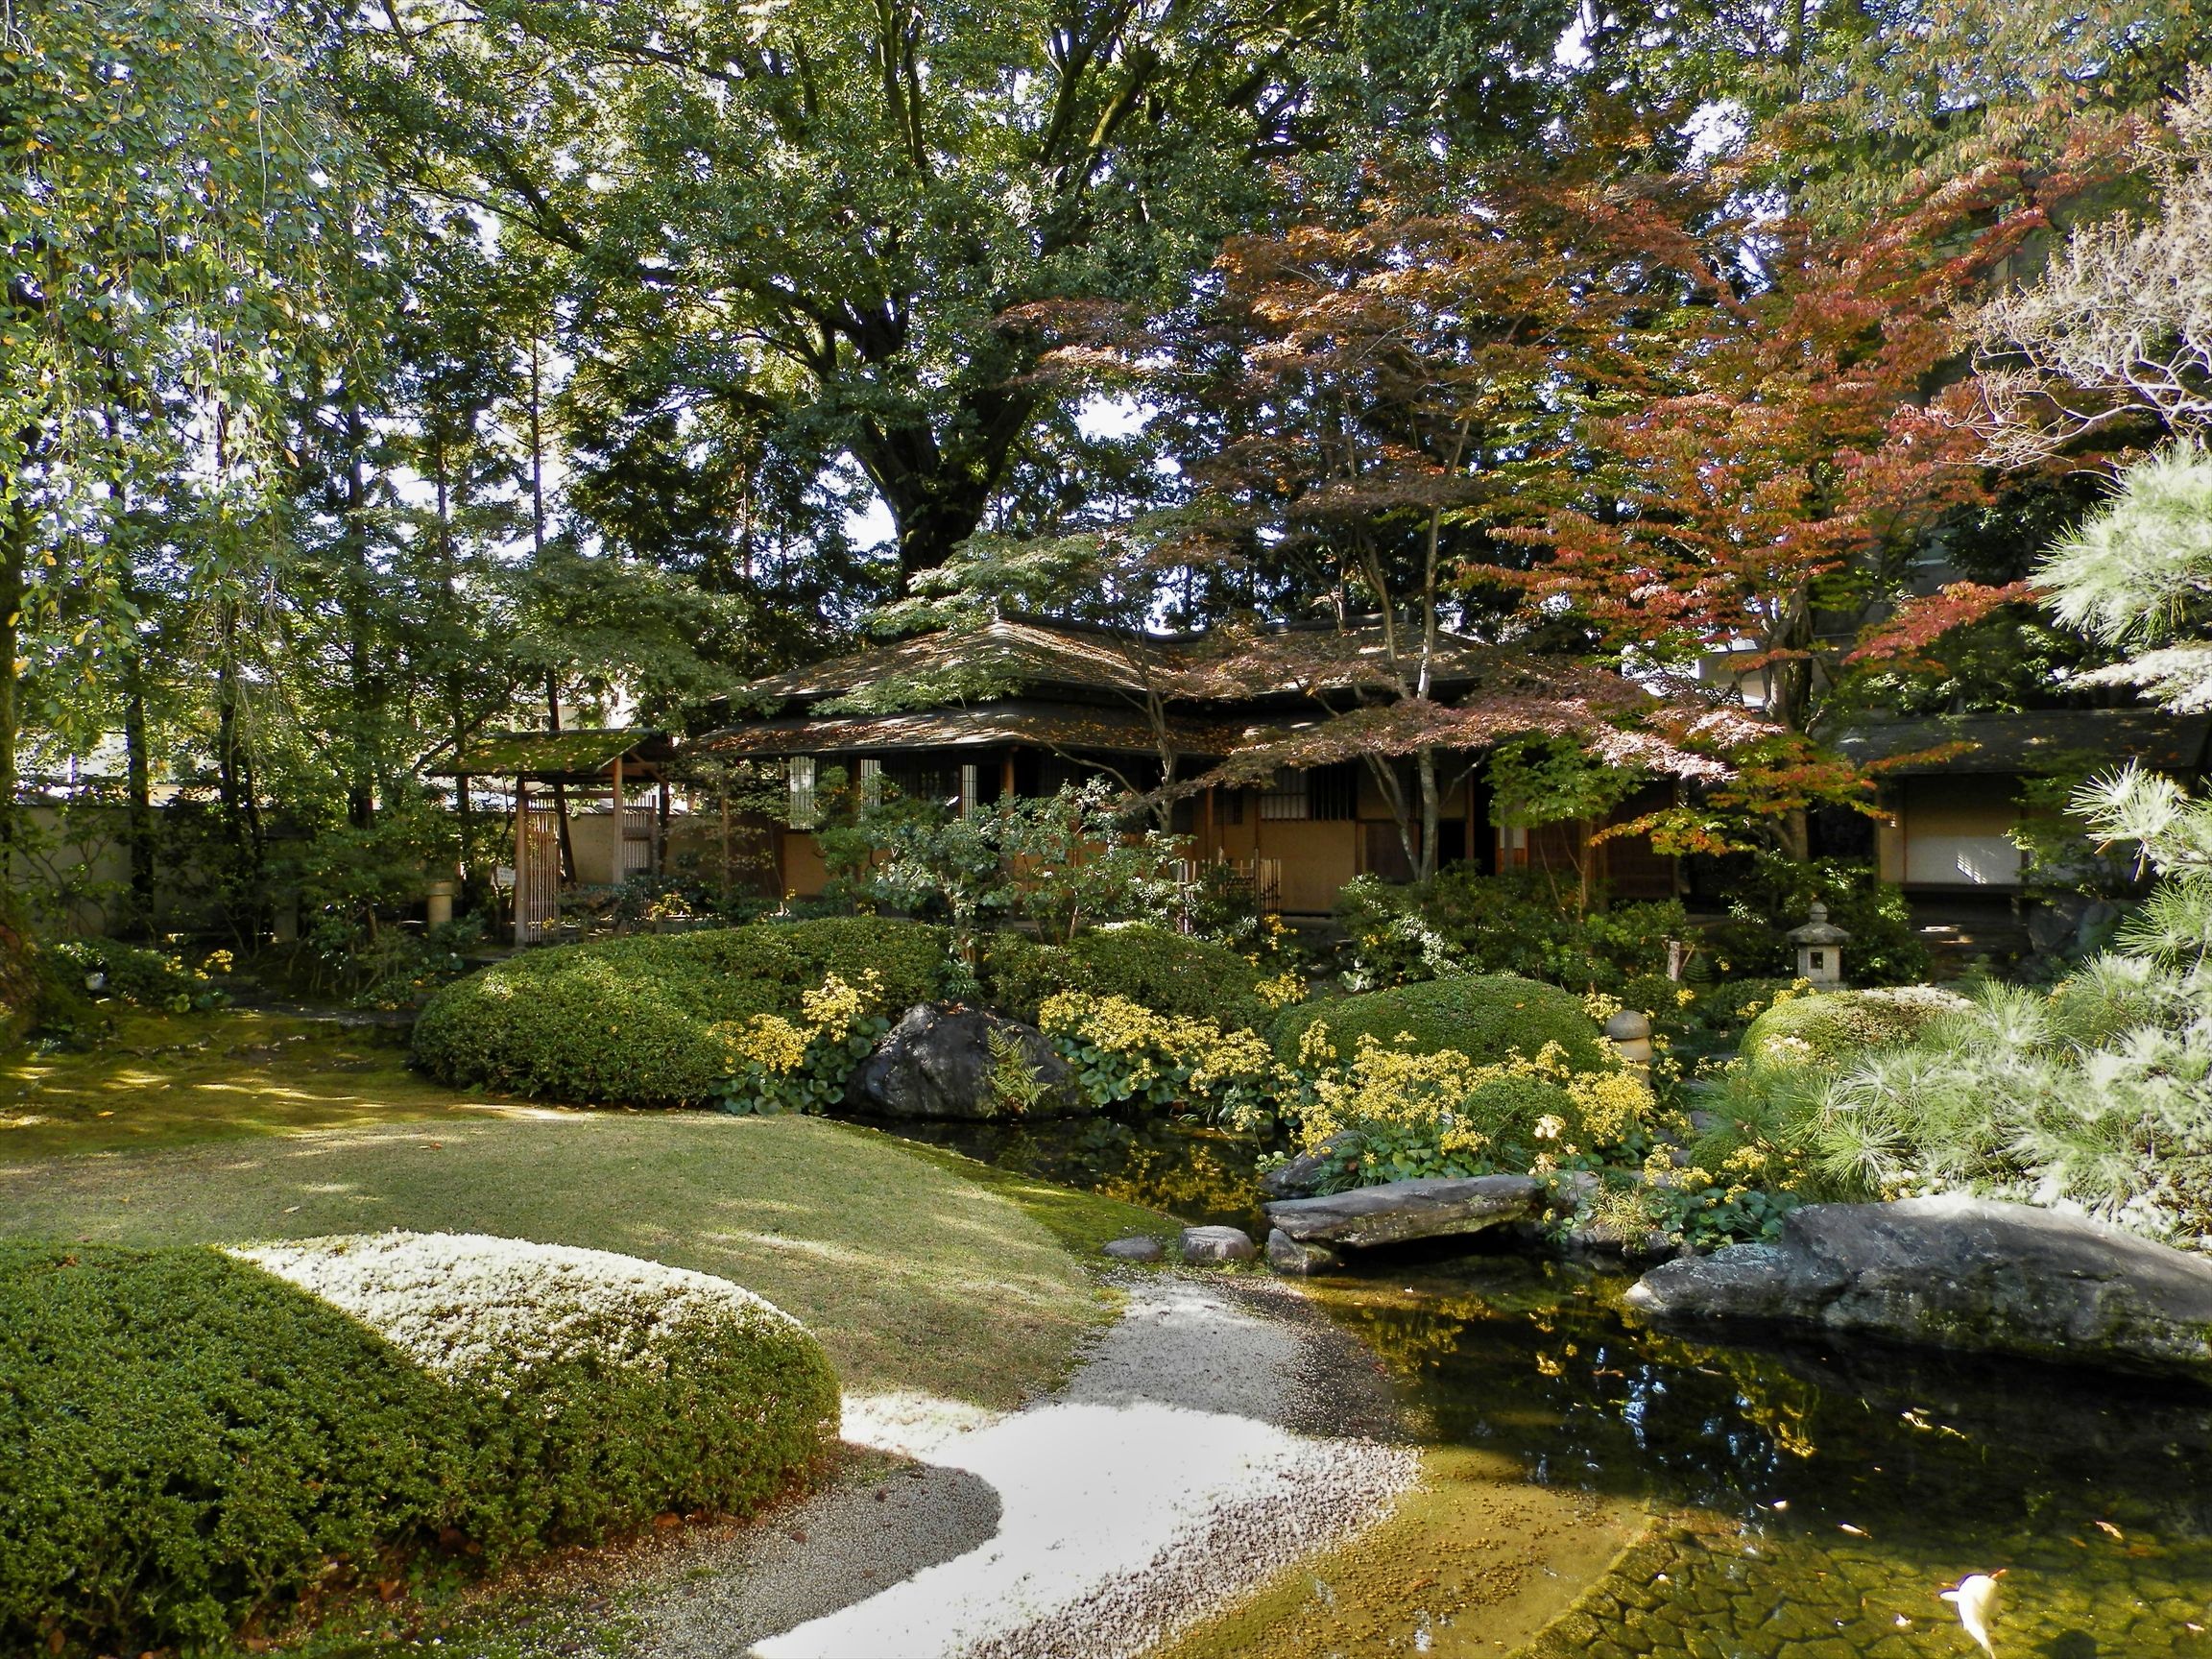 Kyoto Prefectural Guest House 京都府公館 - Japonia Hortus